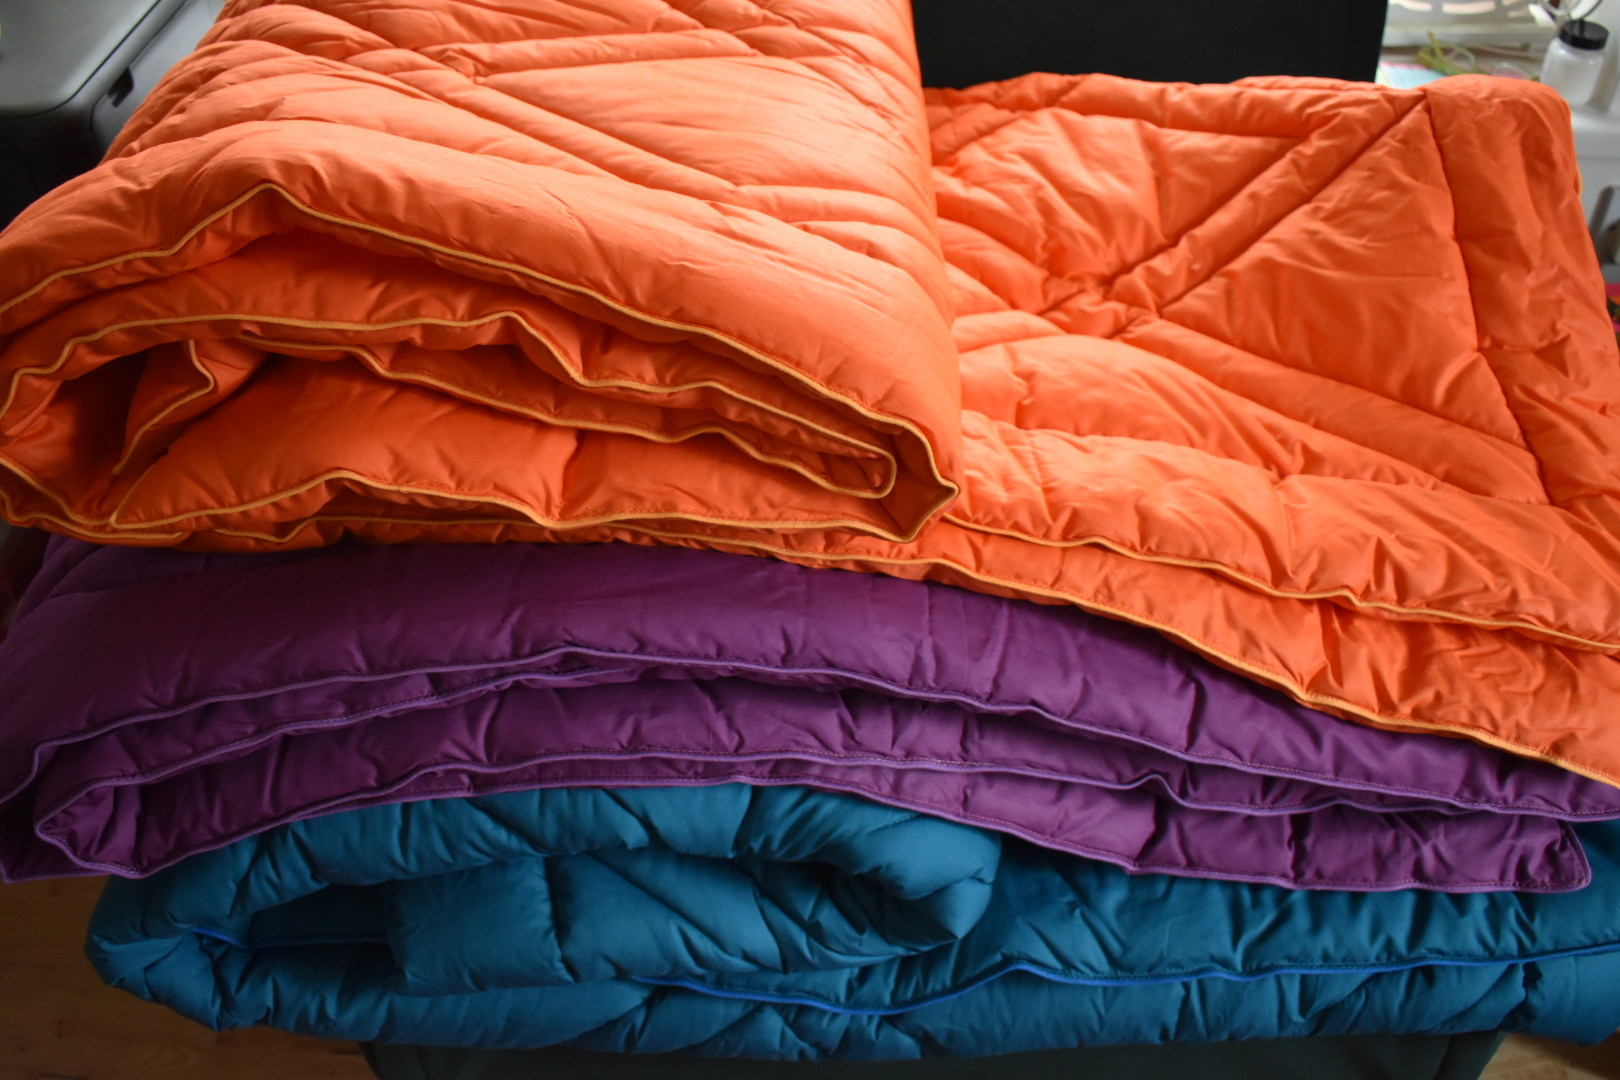 Coverless duvets Orange and Purple and Teal11